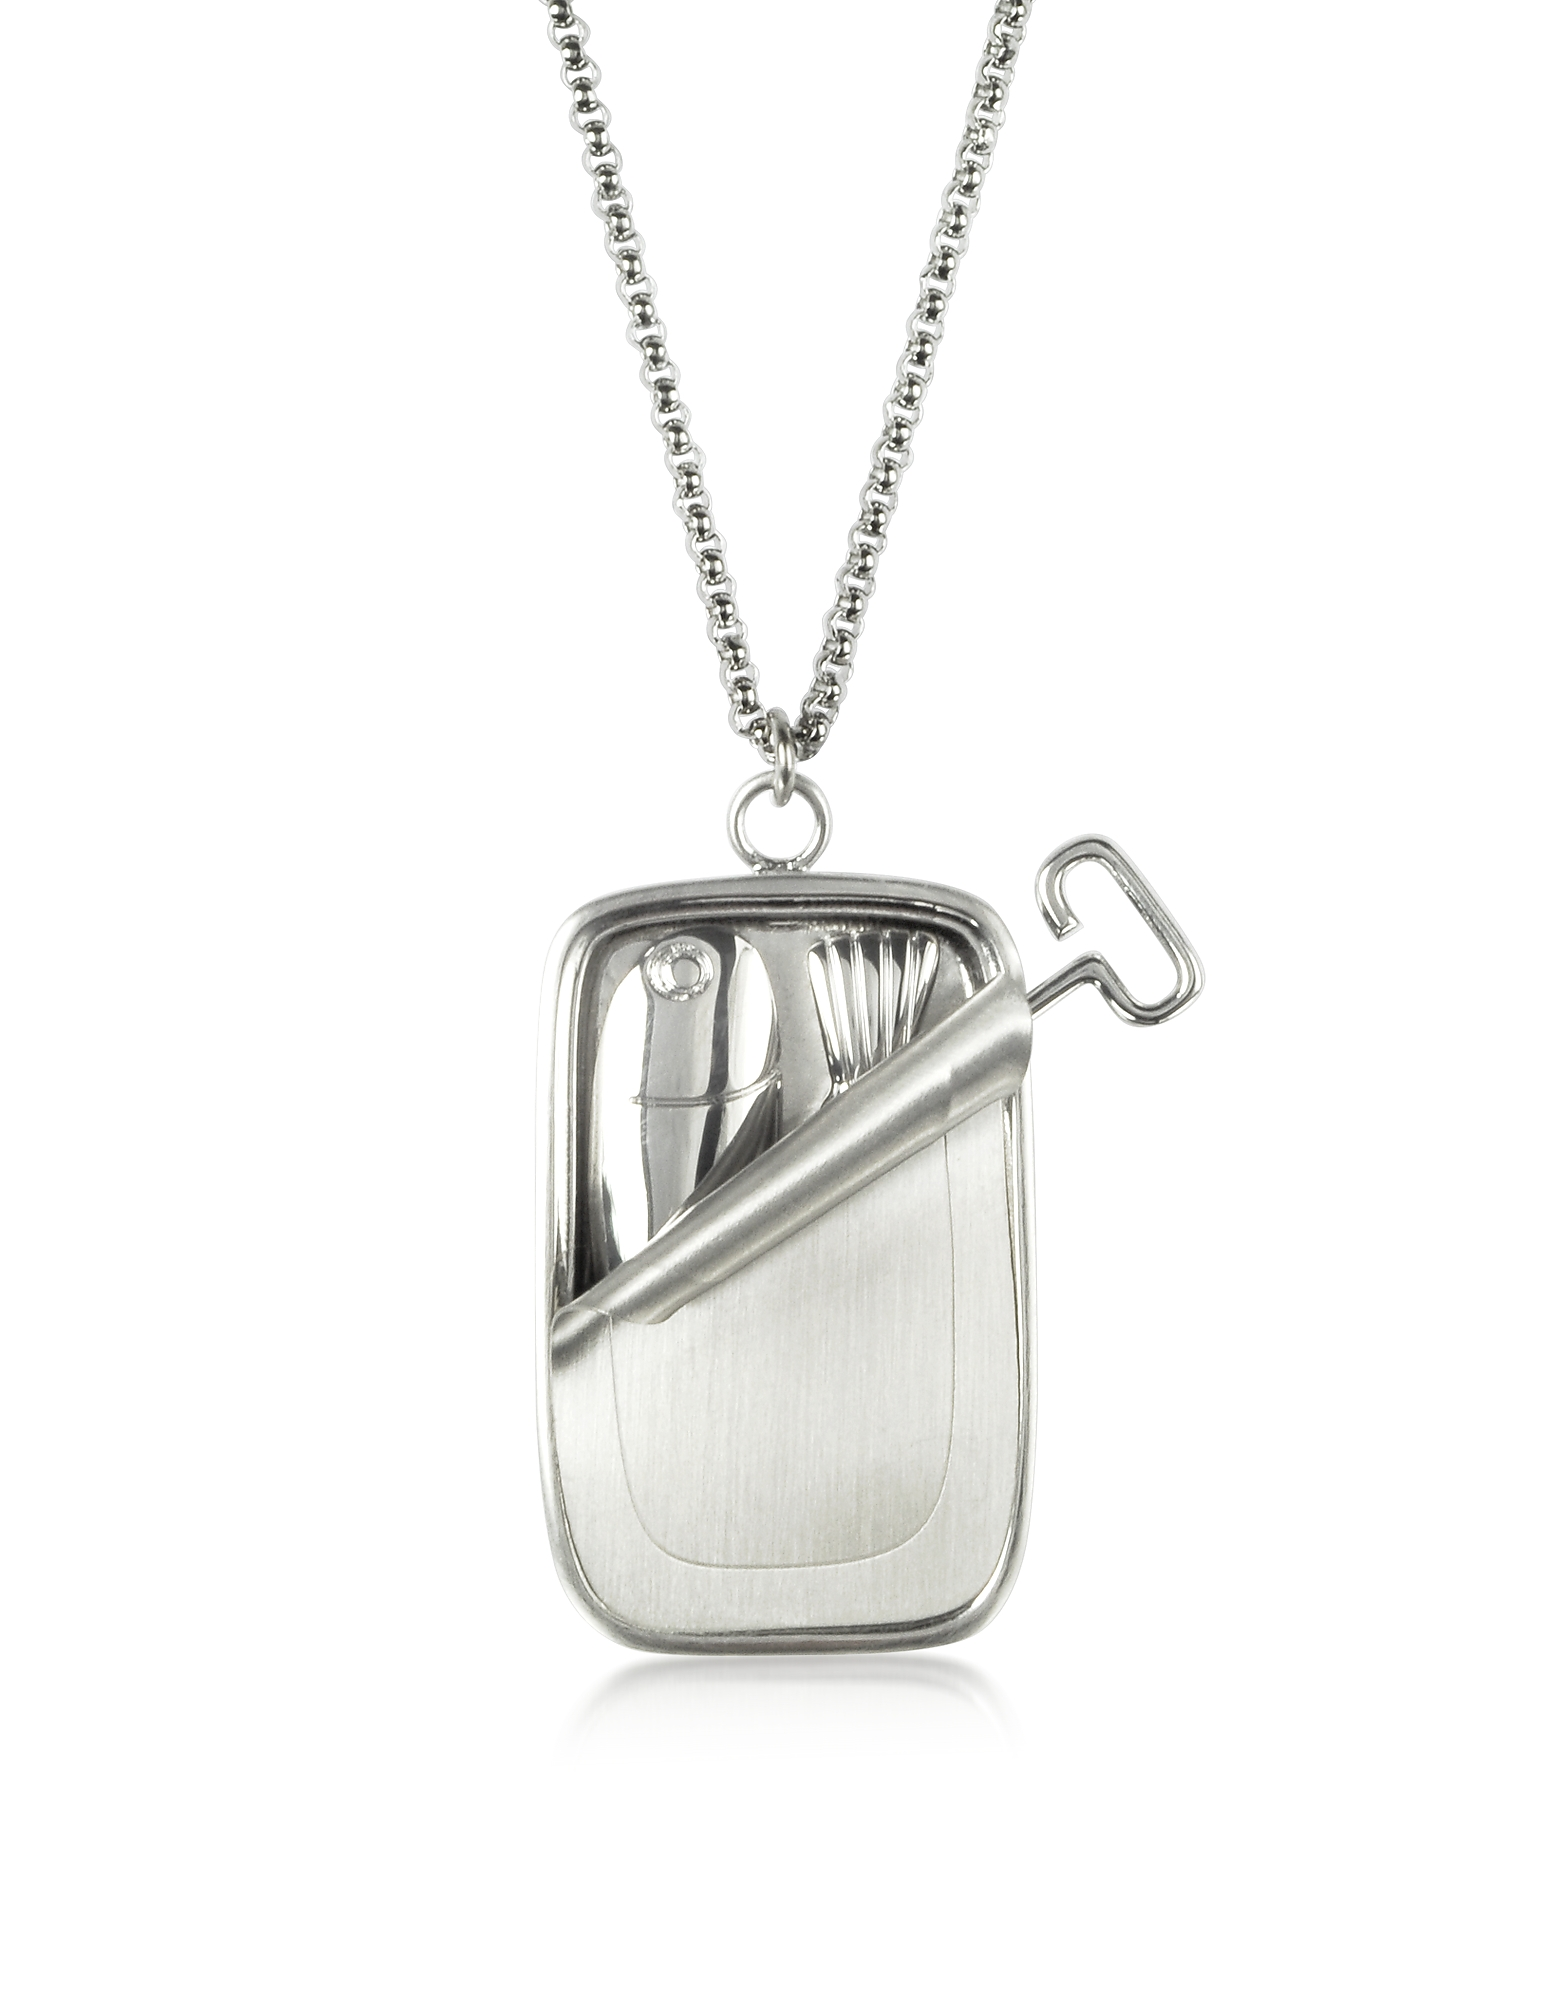 Jw Anderson Sardine Tin Pendant Necklace in Silver